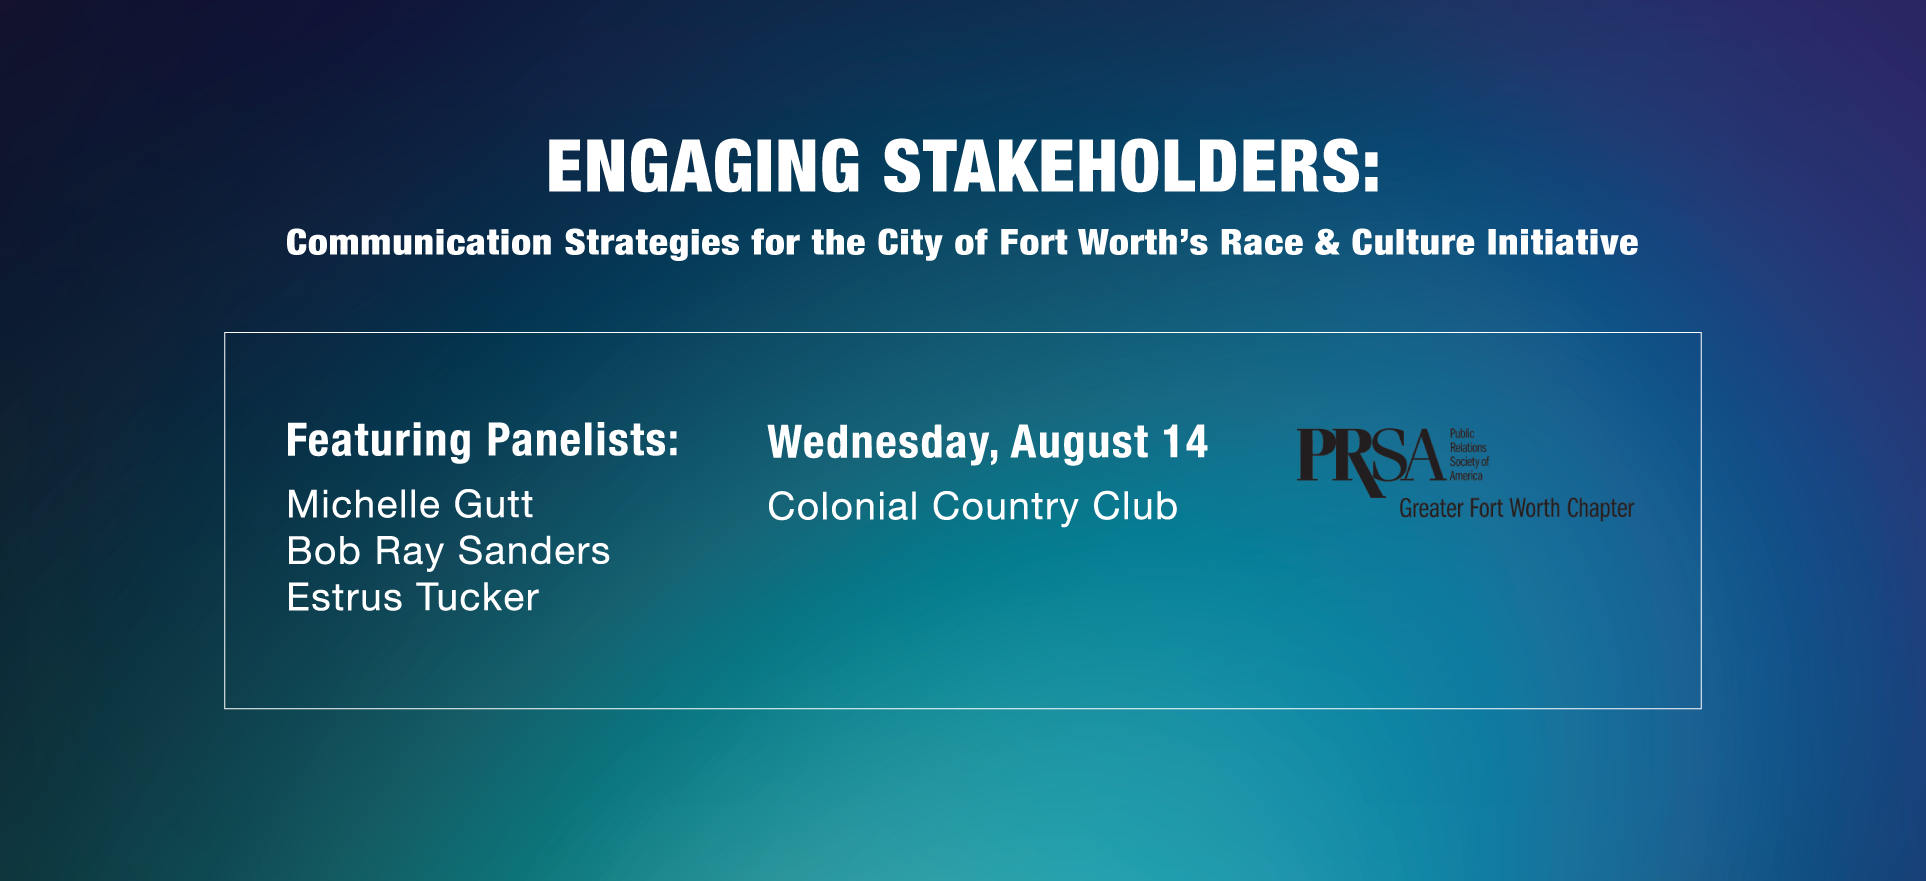 Engaging Stakeholders:  Communication Strategies for the City of Fort Worth's Race & Culture Initiative